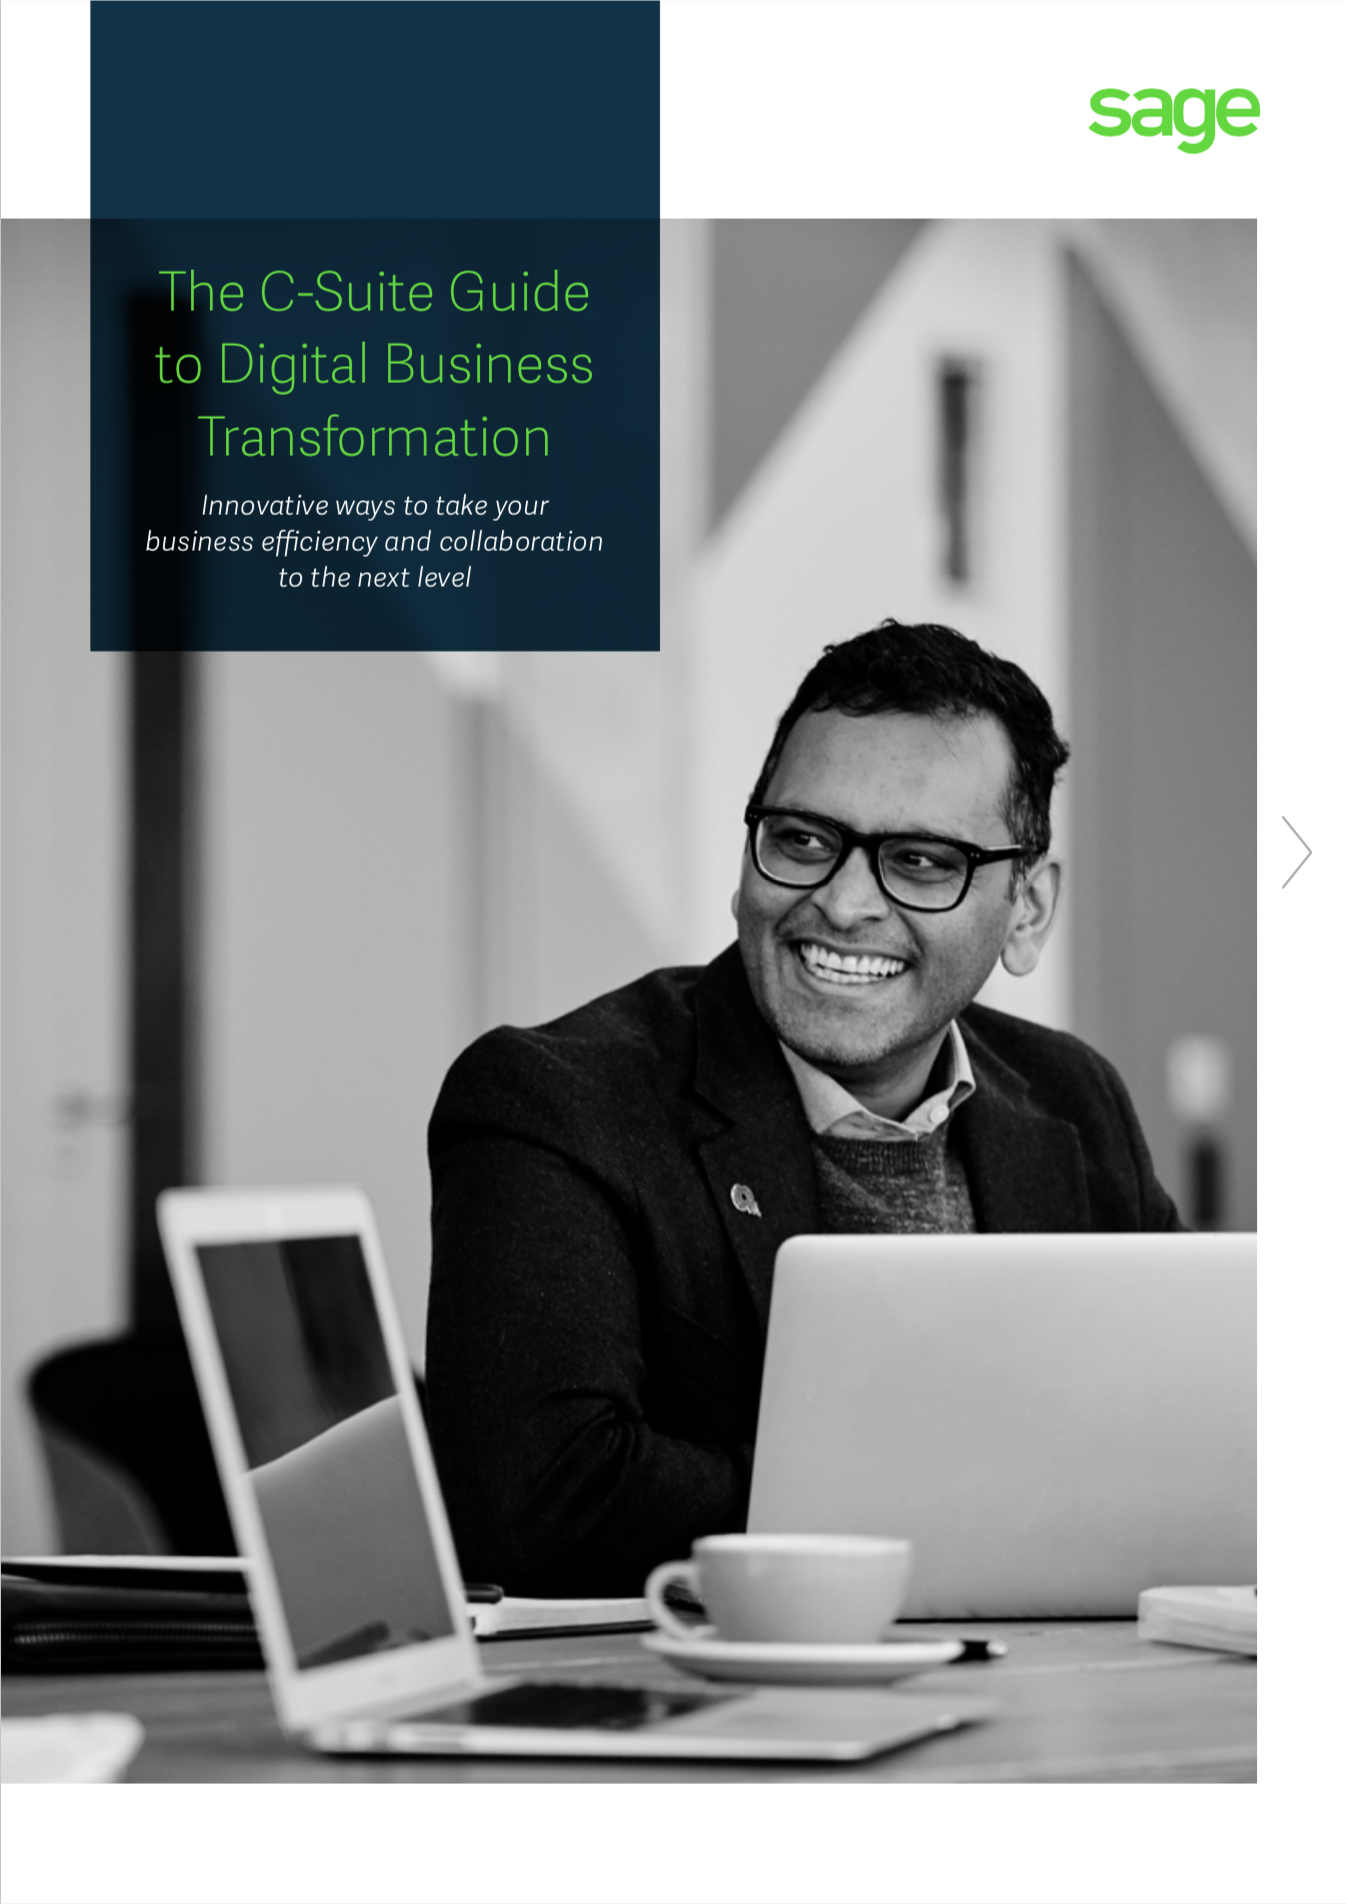 The C-Suite Guide to Digital Business Transformation - SAGE